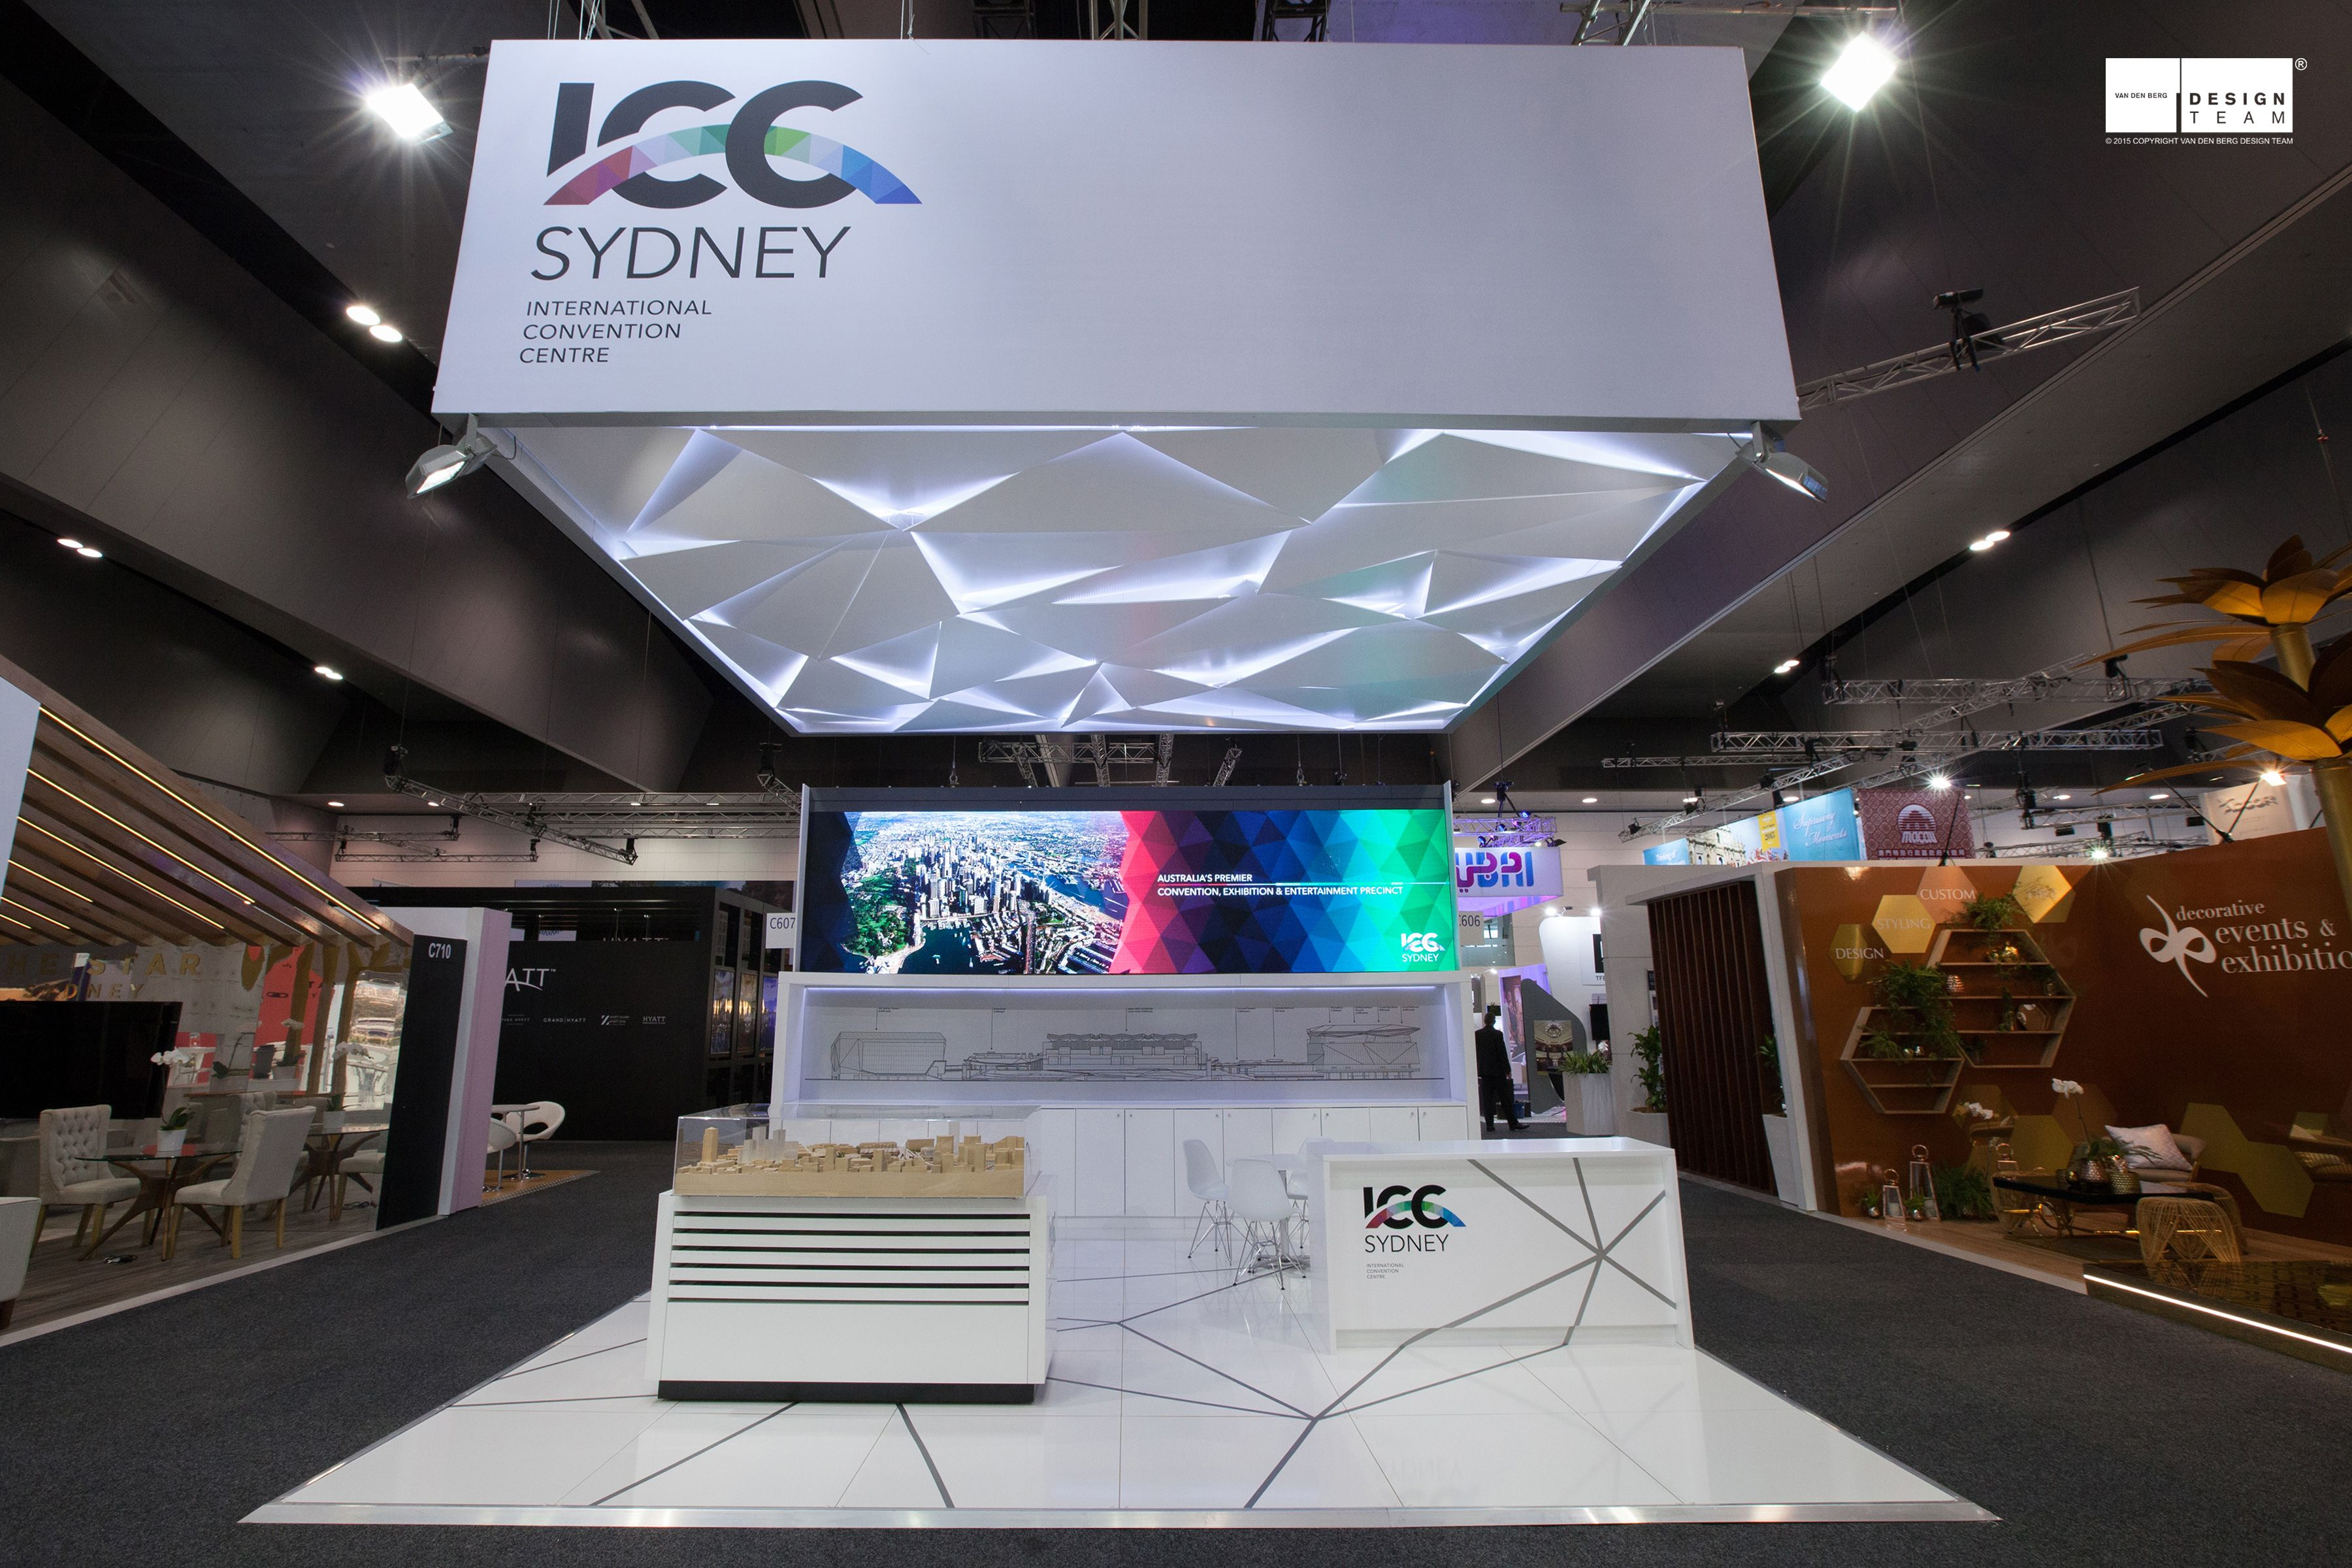 Exhibition Stand Design Tender : Design team were successful on the tender to design and build the